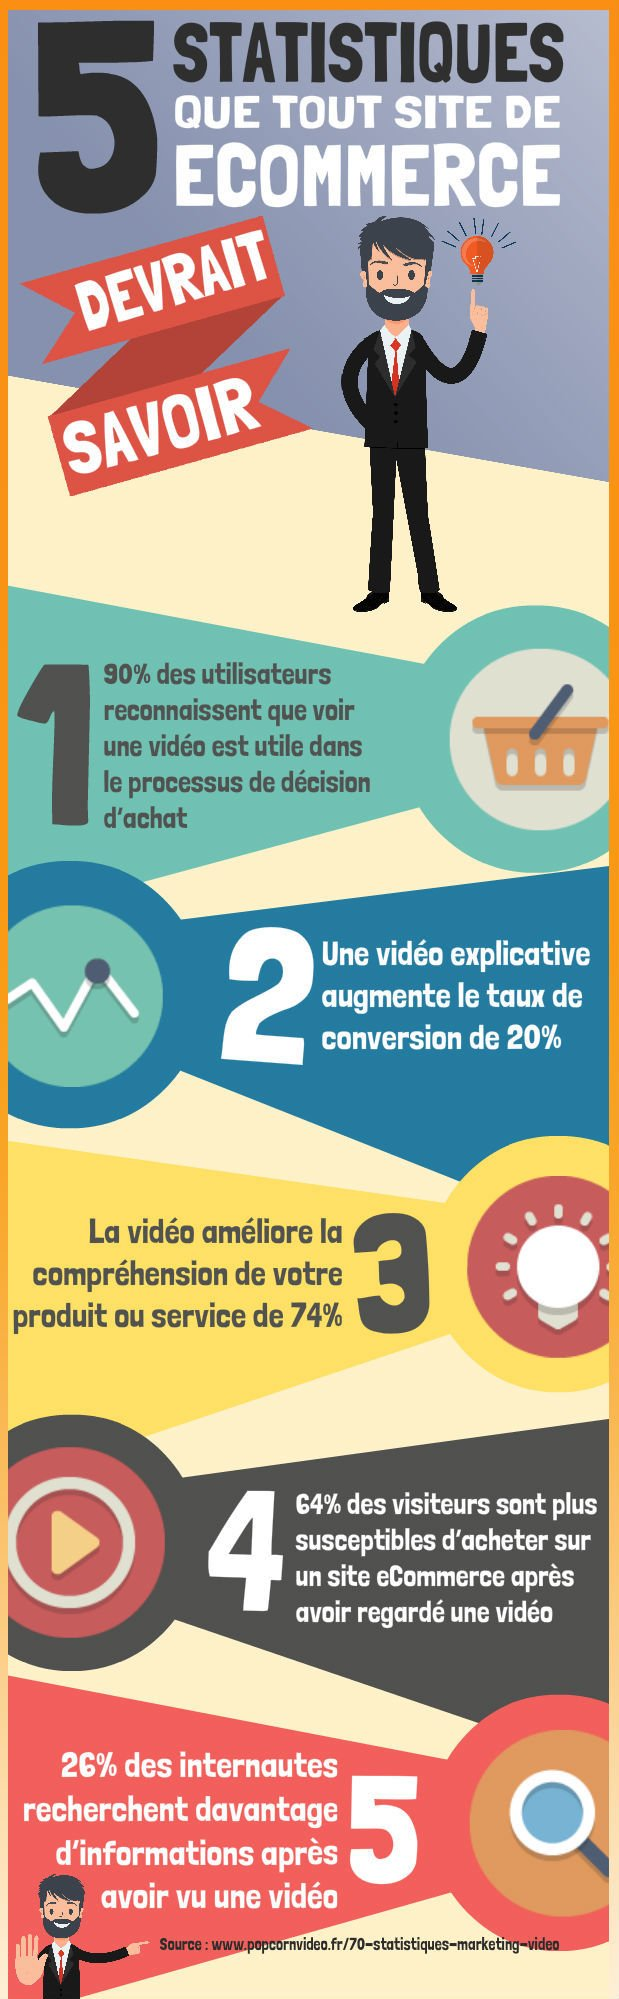 infographie 5 choses ecommerce